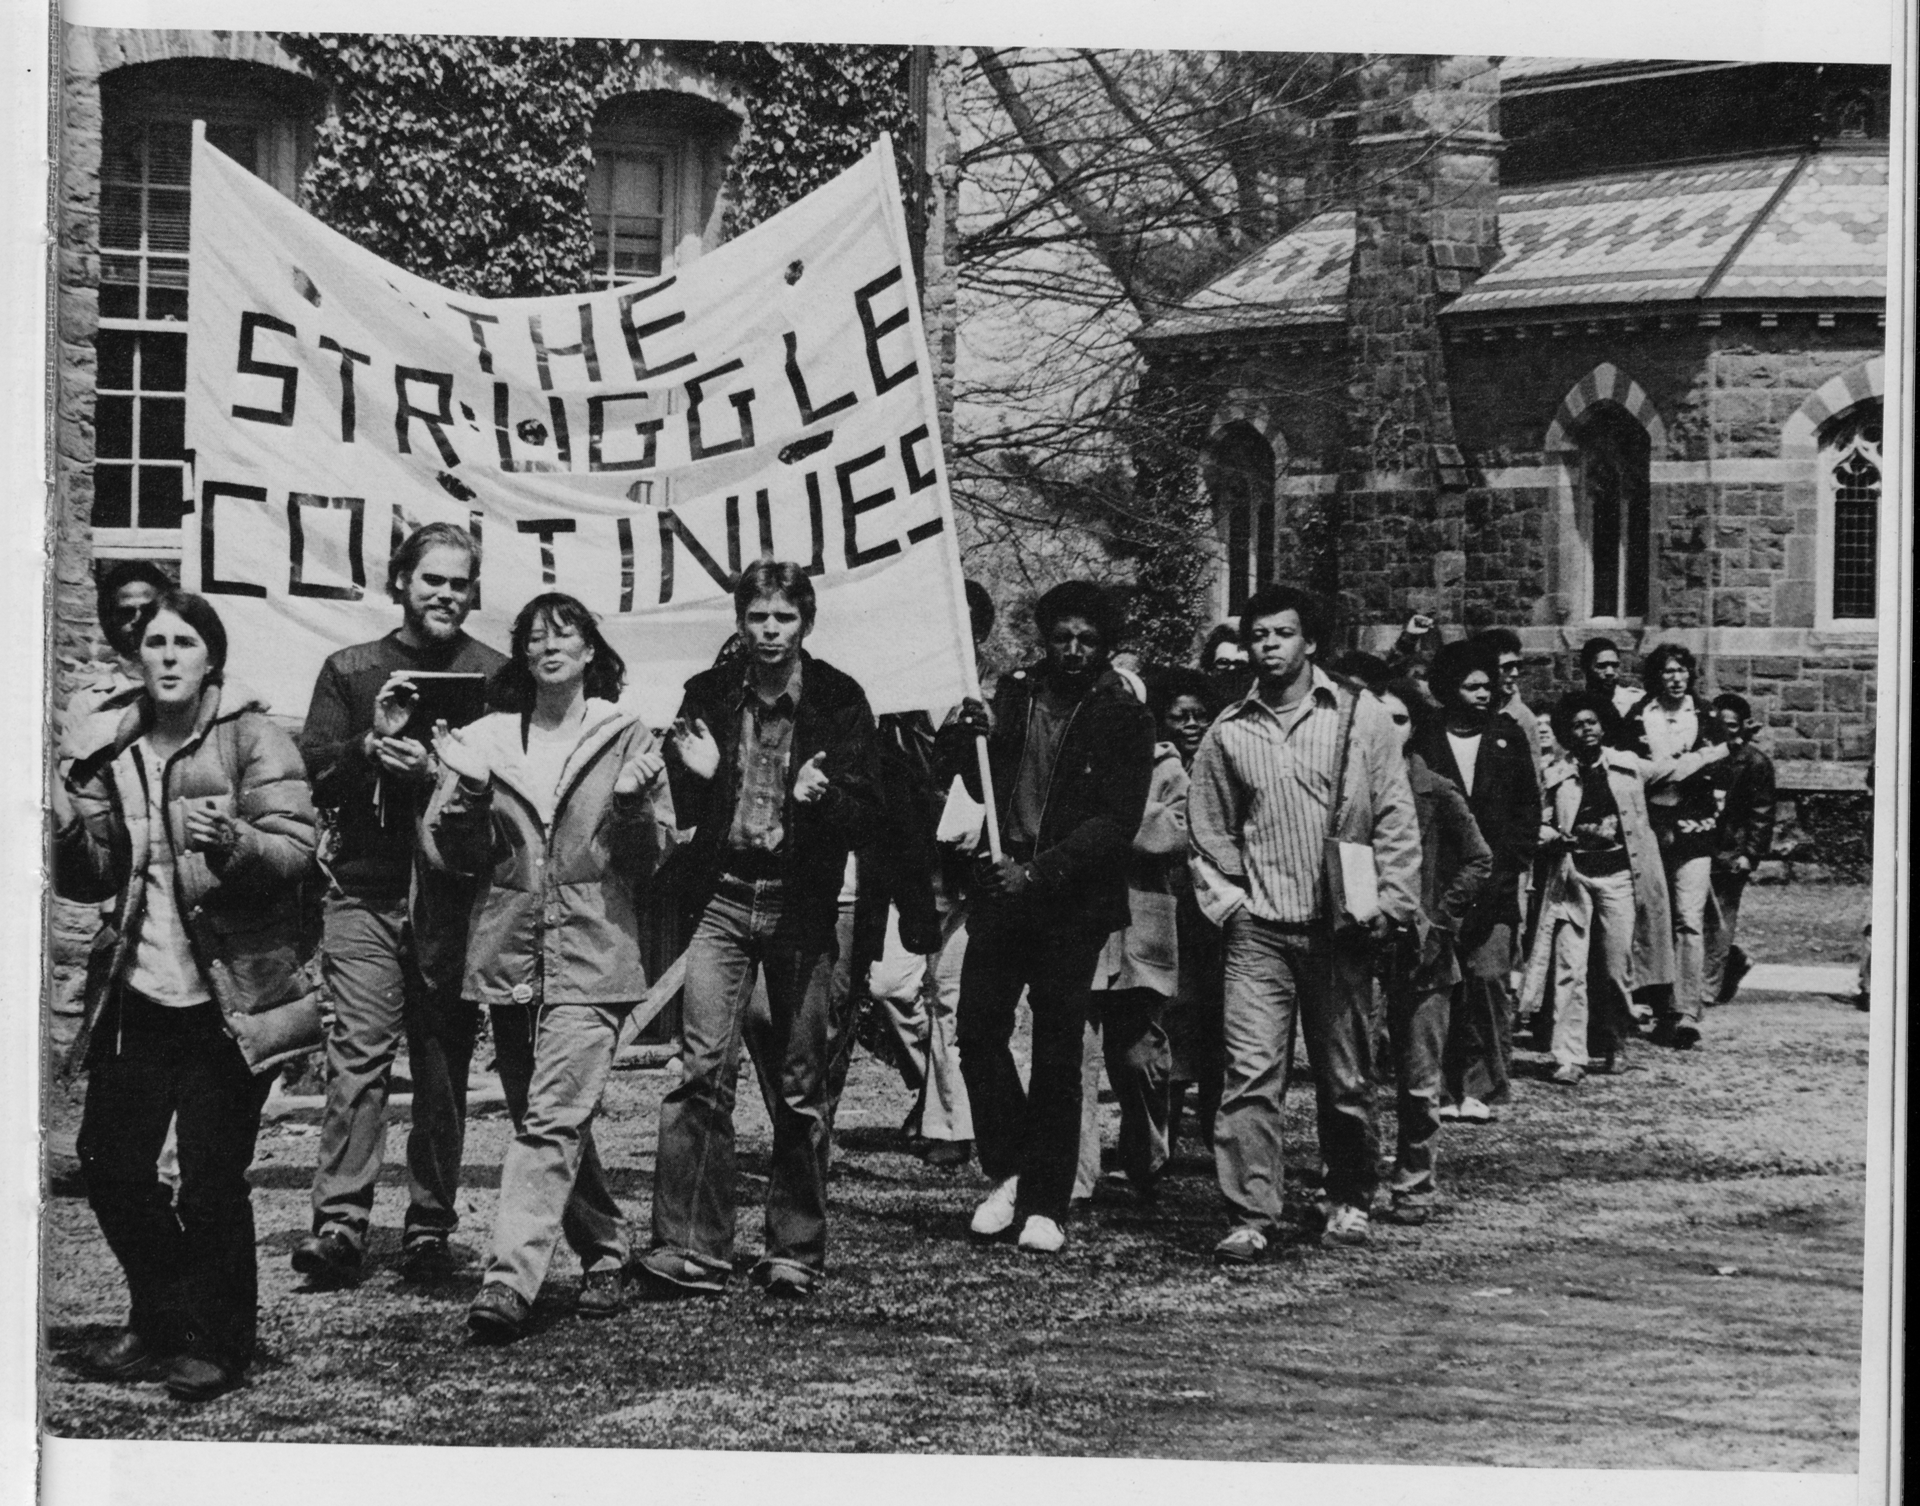 """Image of Princeton Students protesting in the 70s holding a banner saying """"The Struggle continues"""""""